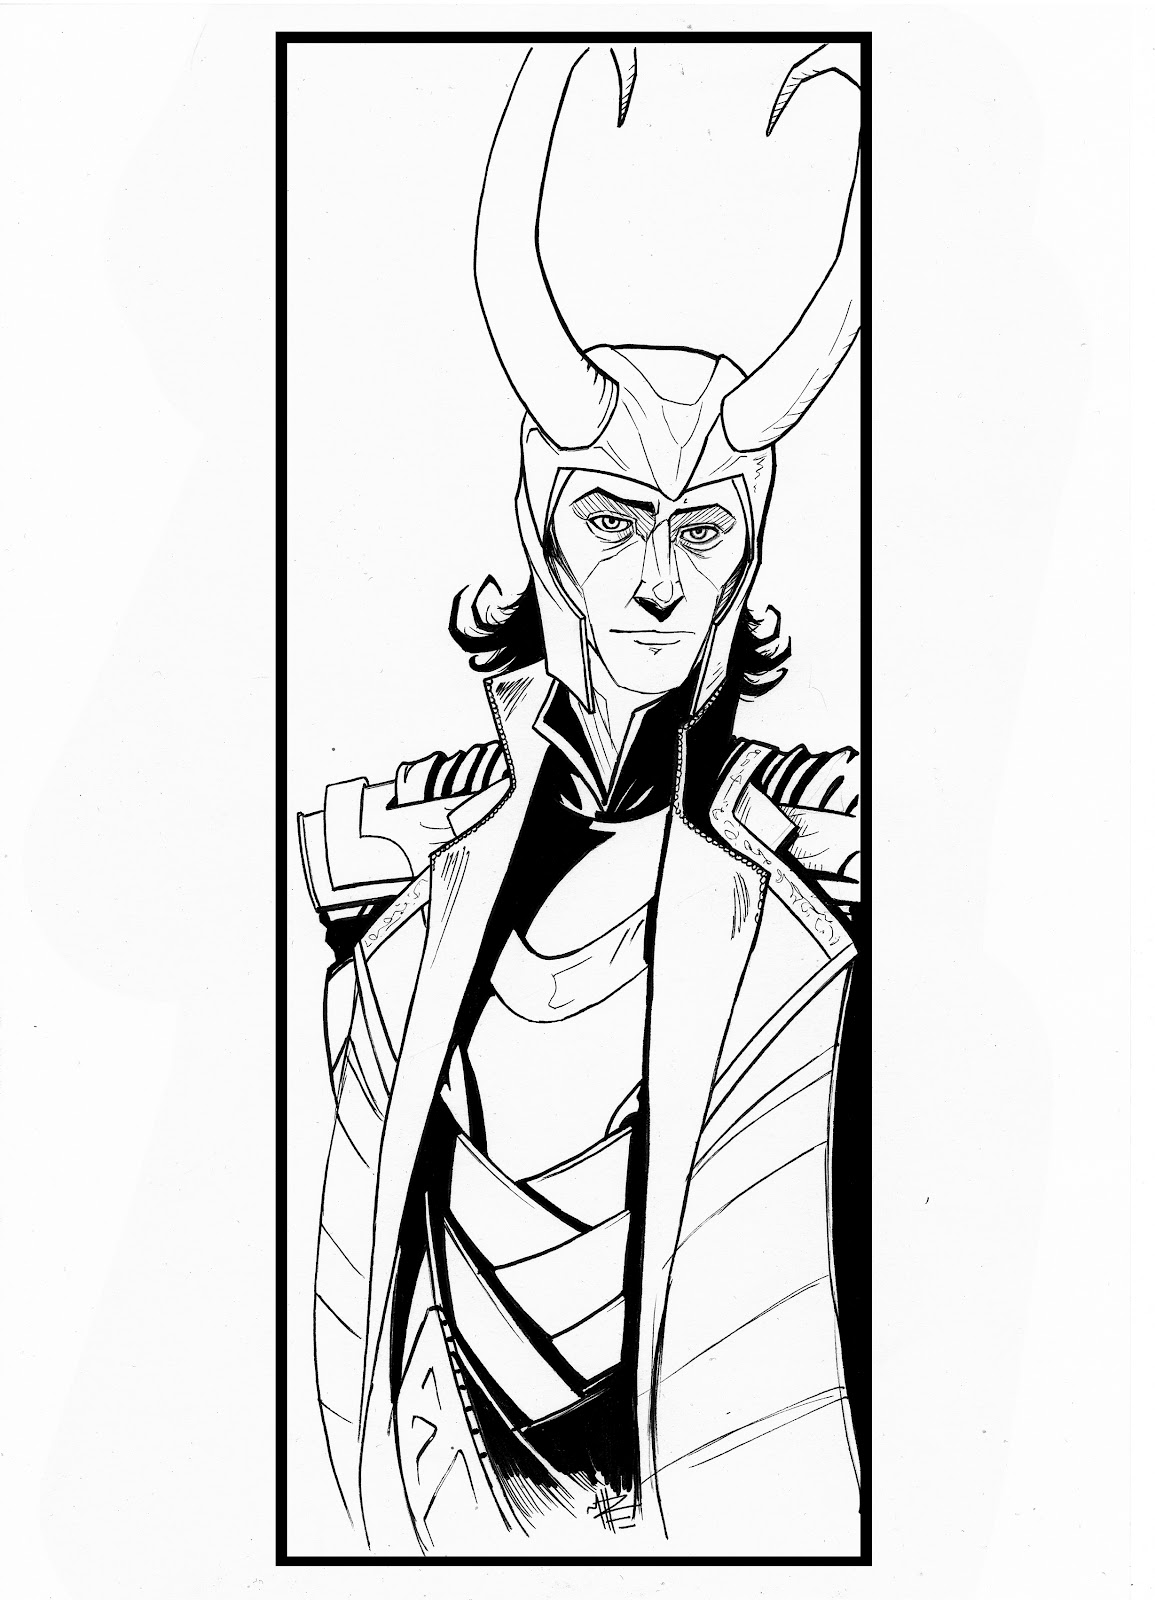 1155x1600 Matt Haworth Waste Of Paint Loki And Thor Sketch To Colour!